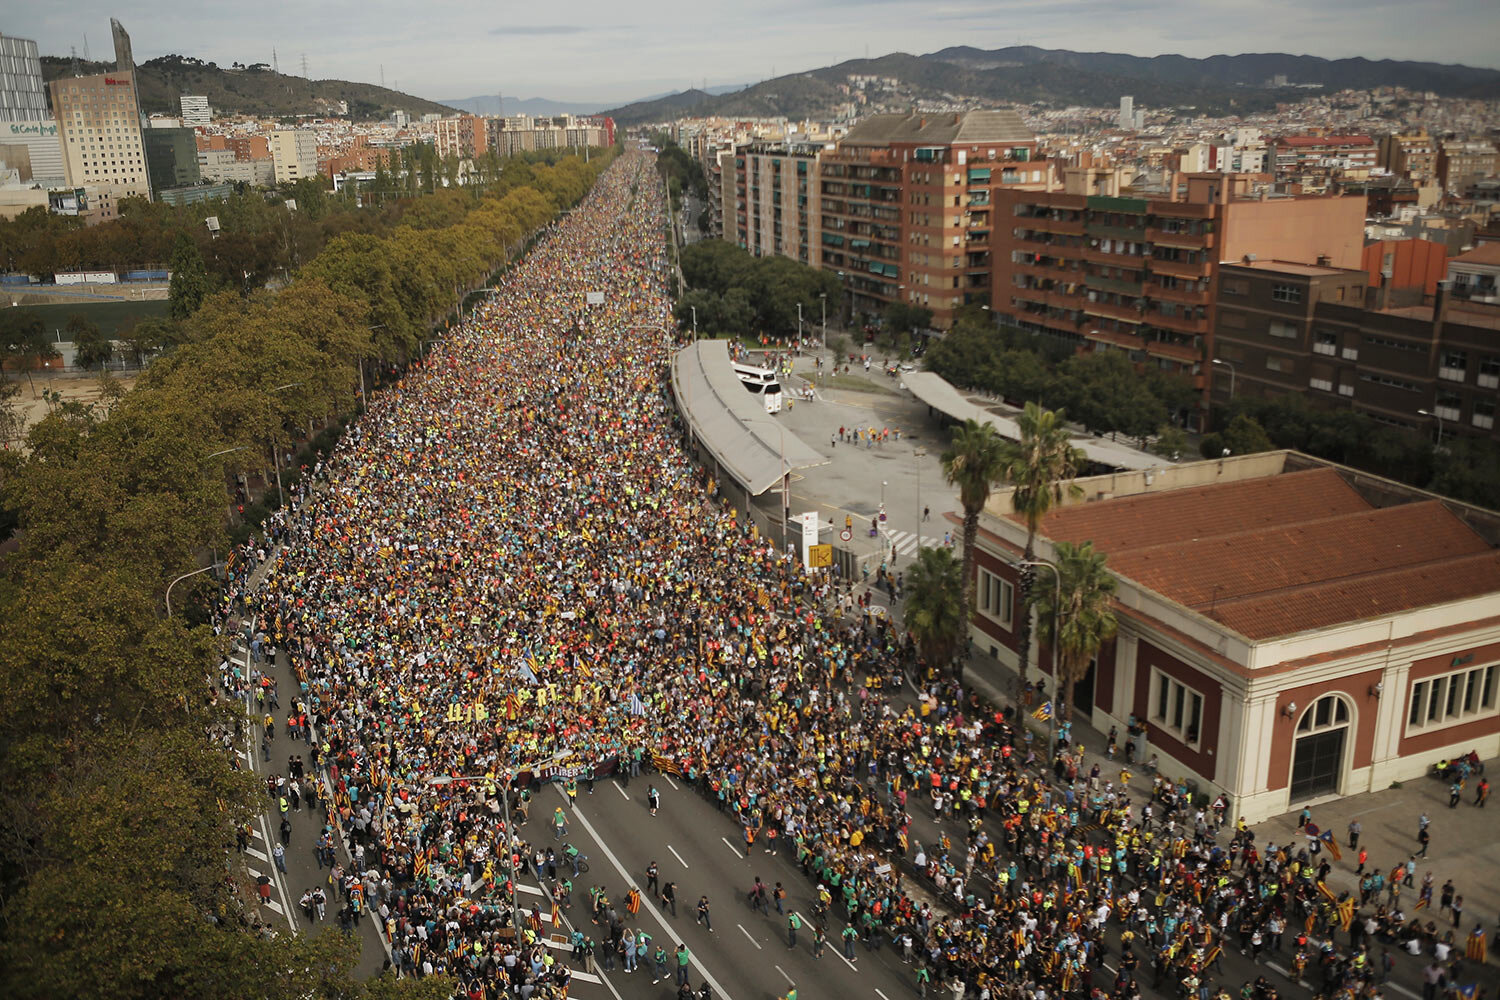 Protesters march into the city on the fifth day of protests over the conviction of a dozen Catalan independence leaders in Barcelona, Spain, Friday, Oct. 18, 2019. (AP Photo/Joan Mateu)